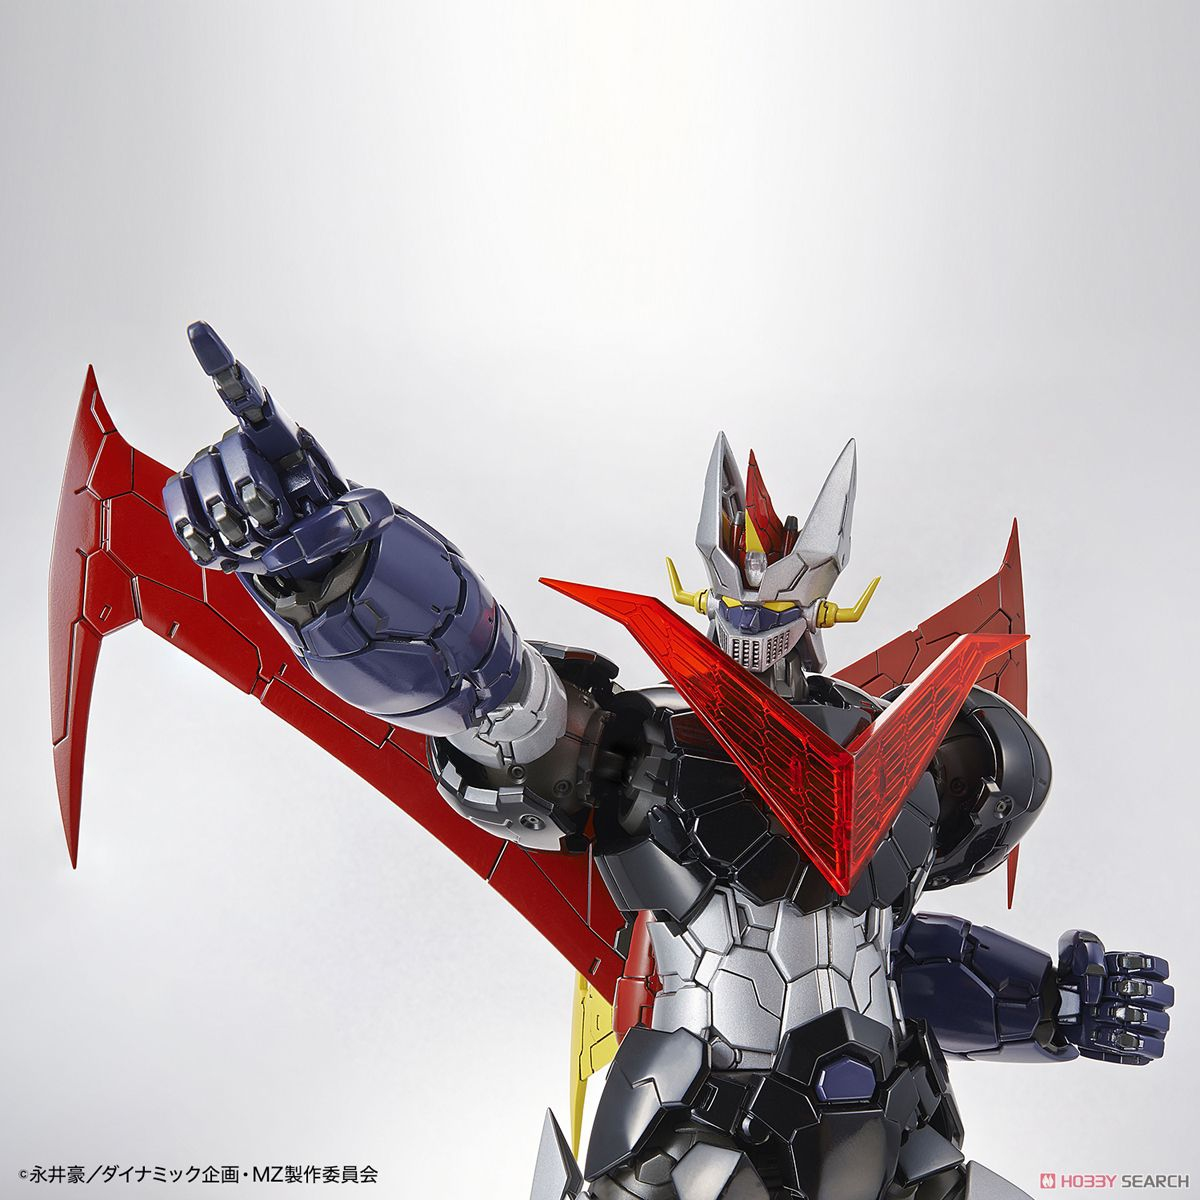 Bandai 1/144 Great Mazinger Z Infinity Ver Plastic Model Kit